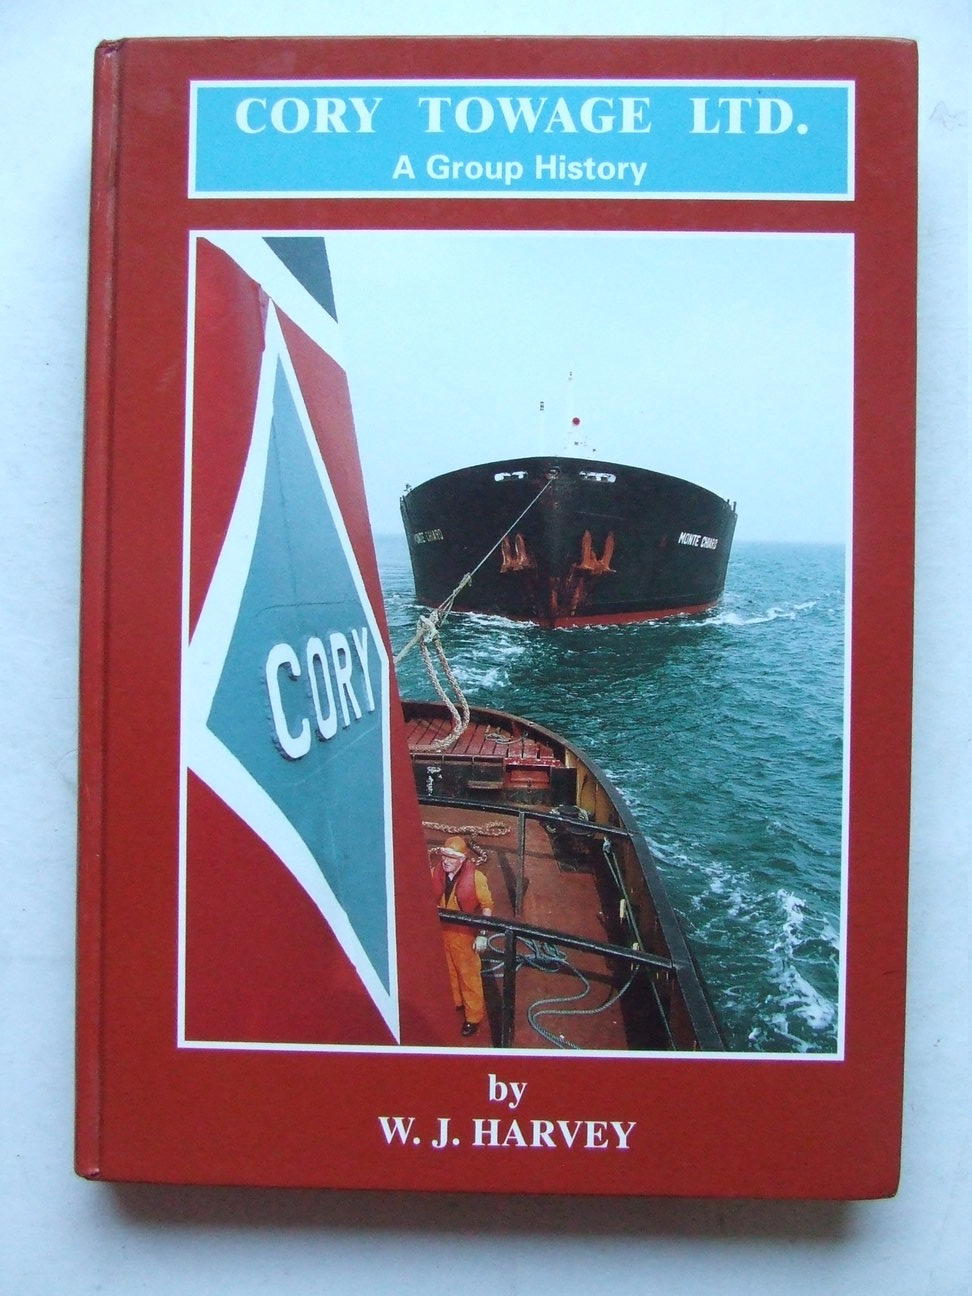 Cory Towage Ltd, a group history